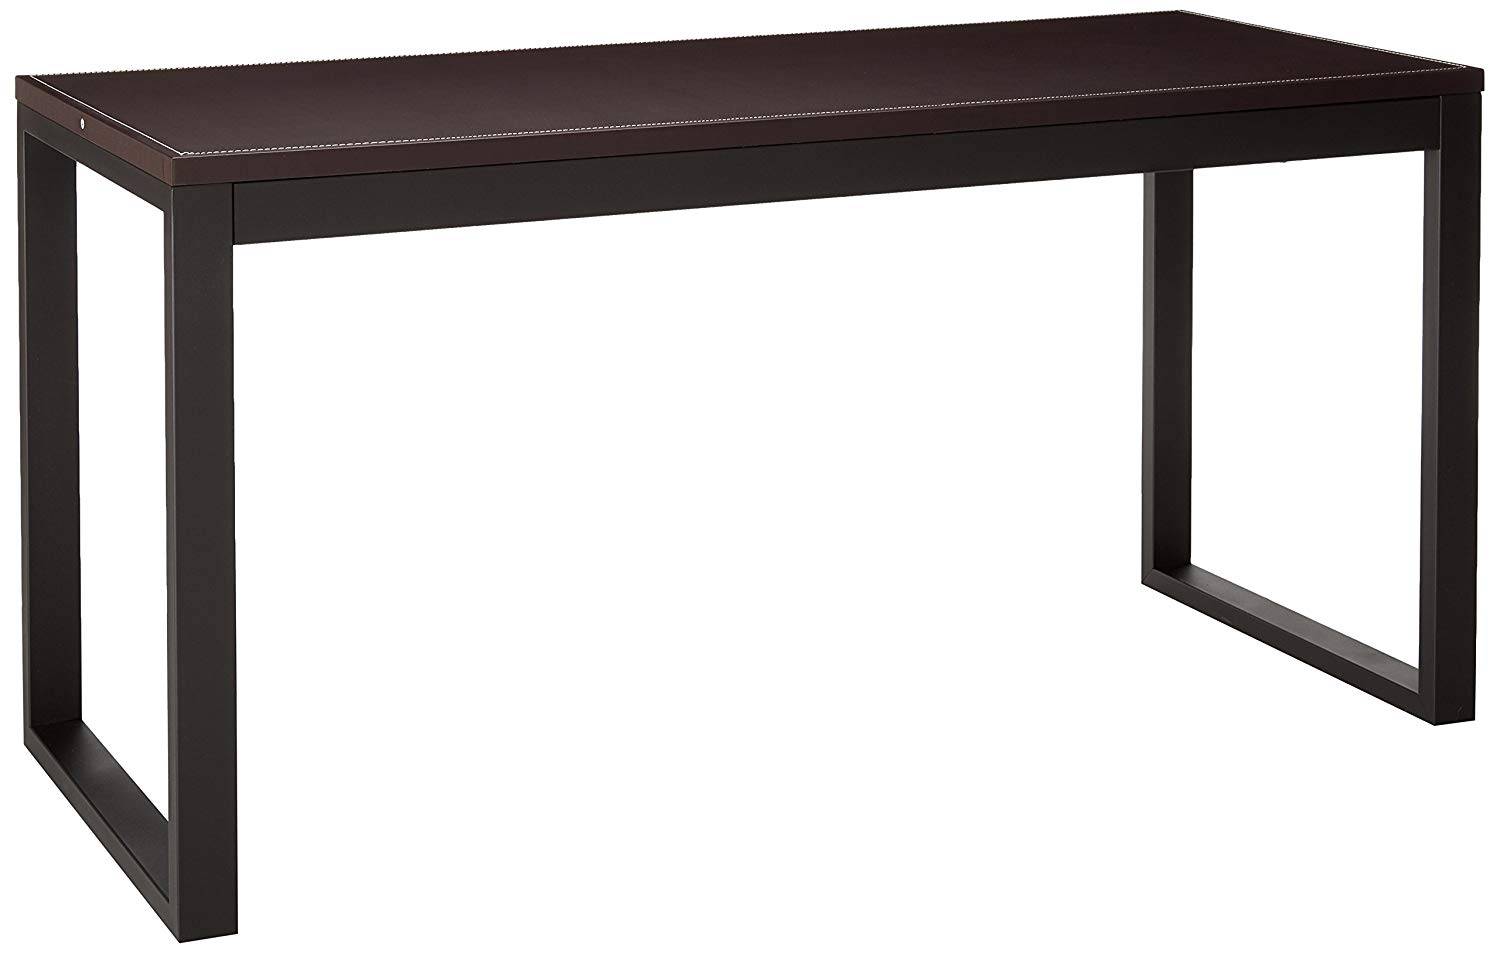 Major-Q Faux Leather Top Workstation Desk with Metal Base, Espresso and Sandy Black, 60 x 24 x 29H